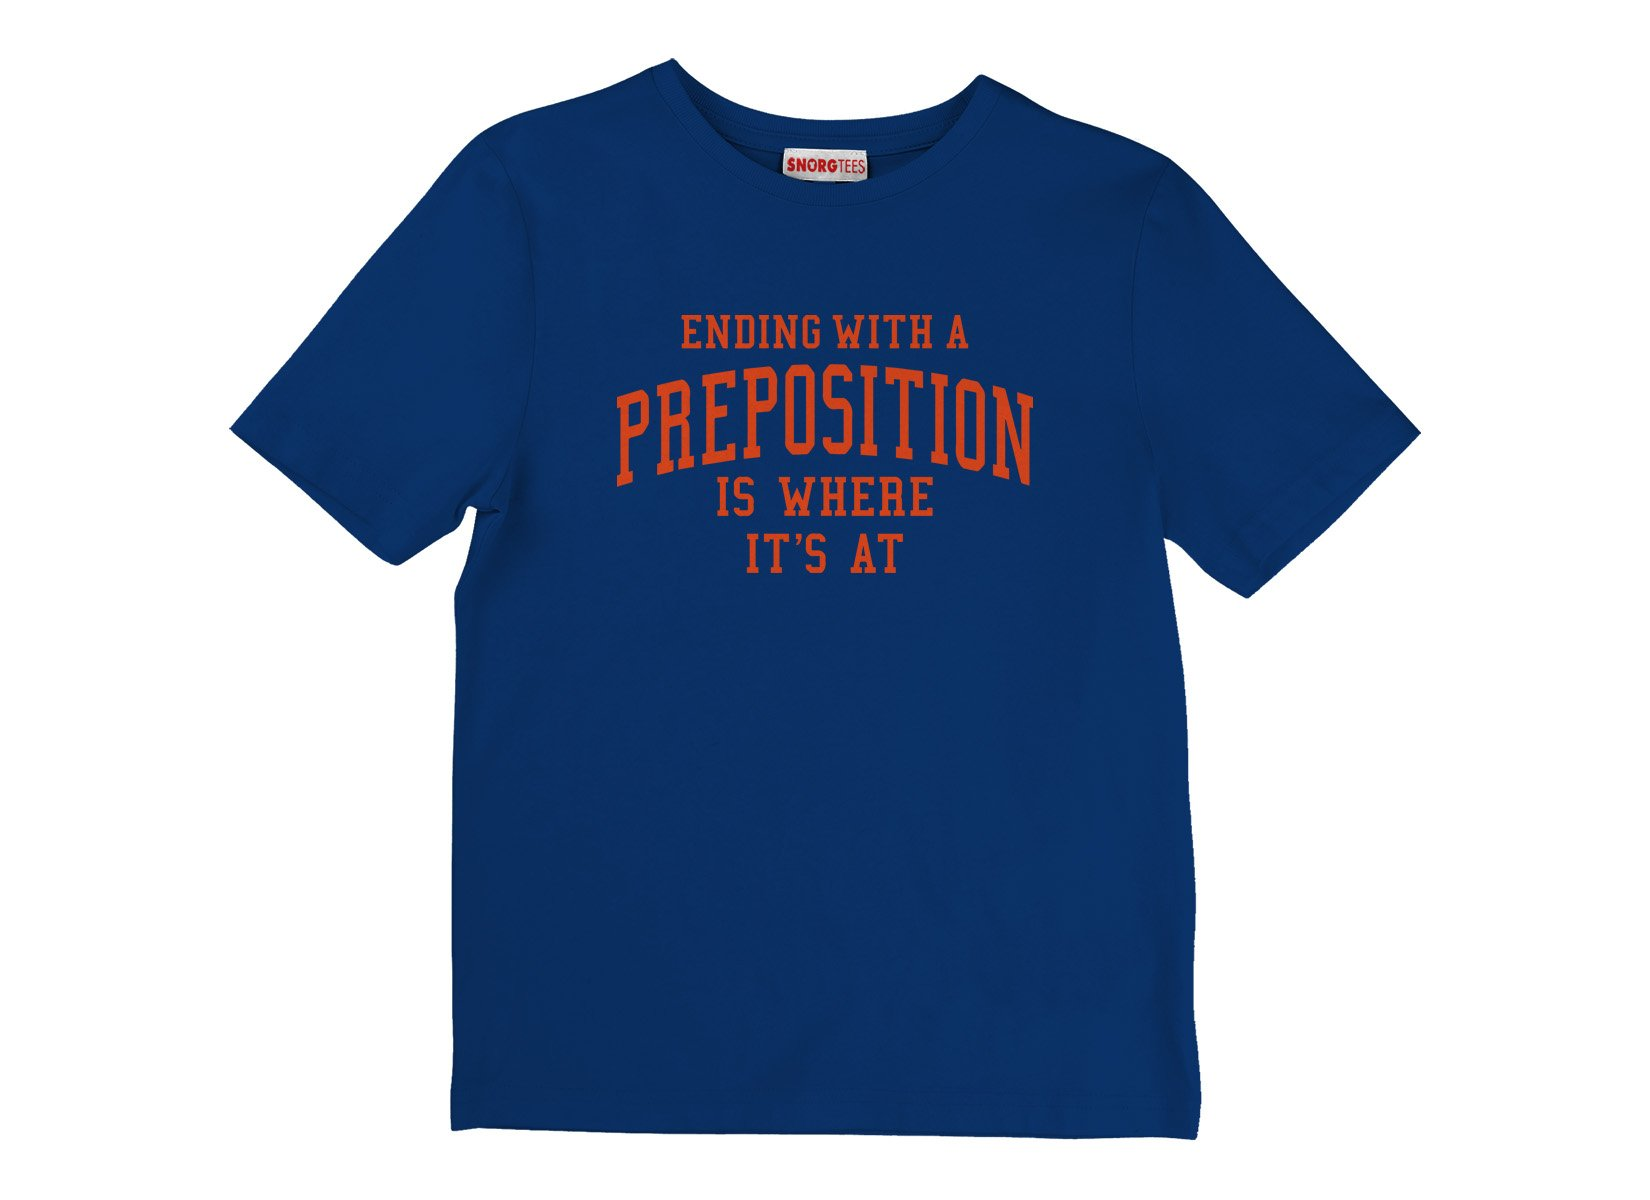 Ending With A Preposition Is Where It's At on Kids T-Shirt